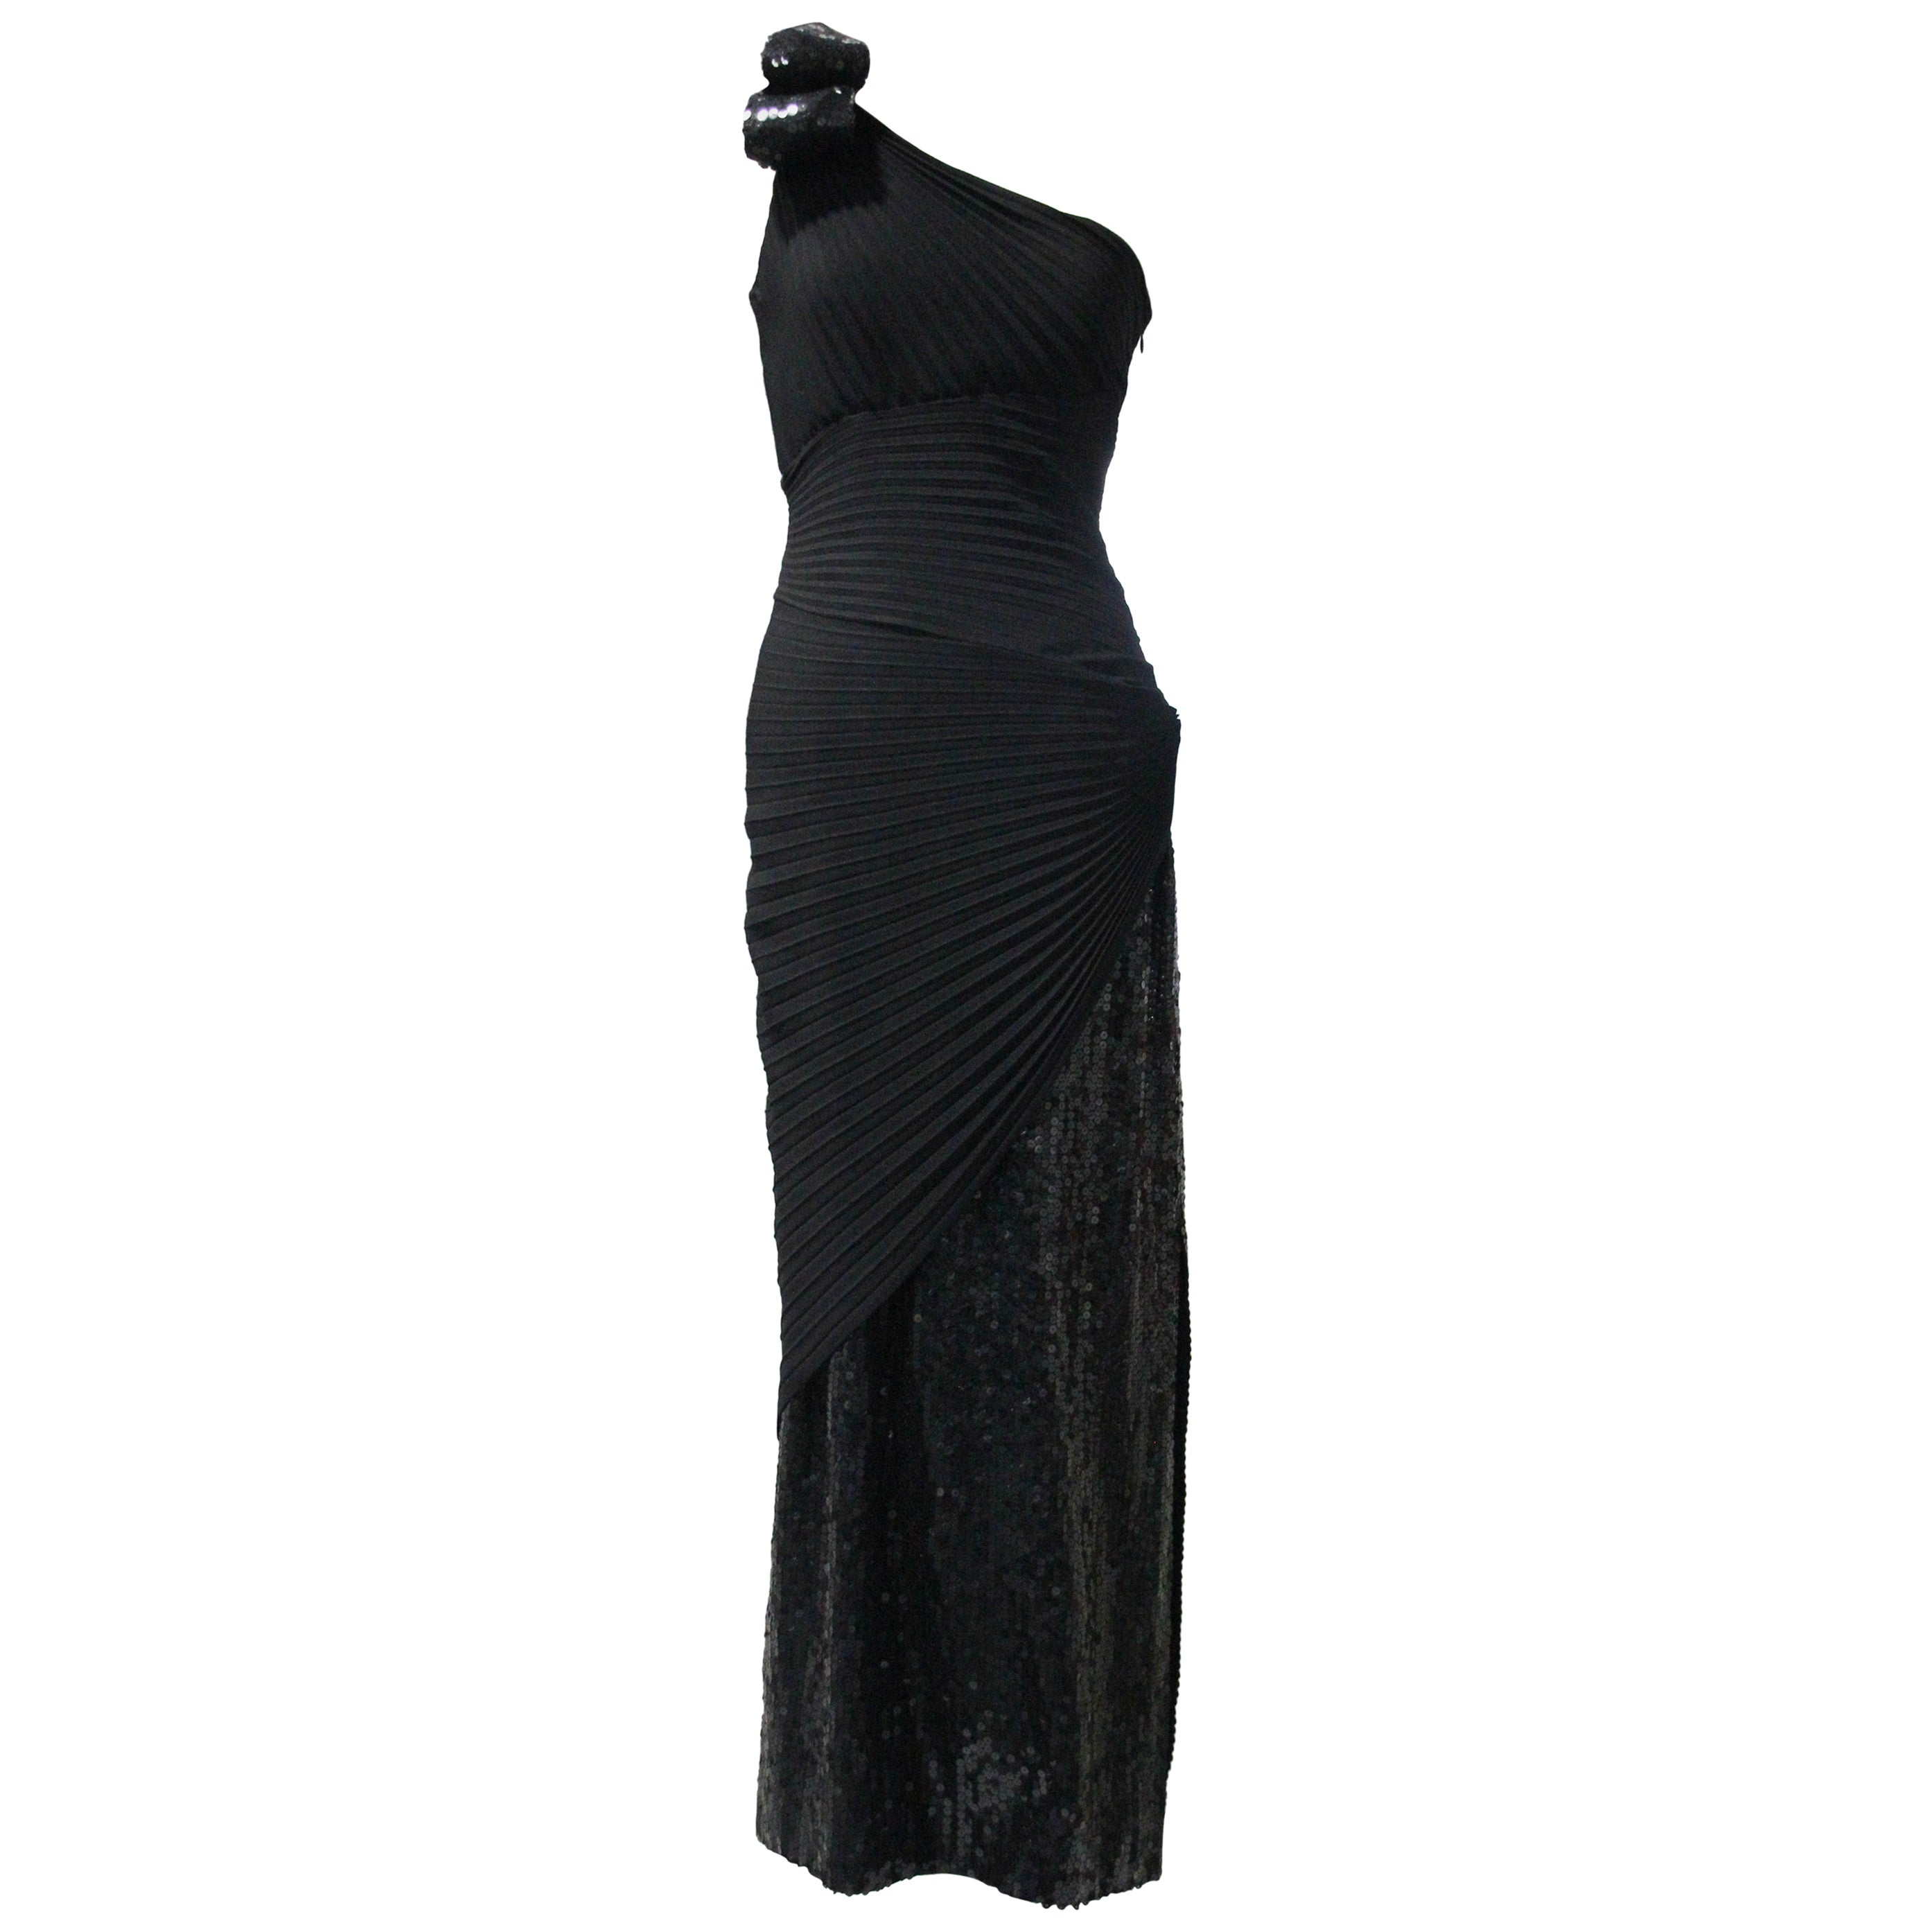 1970s Lorris Azzaro Black Rayon Crepe One-Shoulder Sequin Panel Pleated Gown